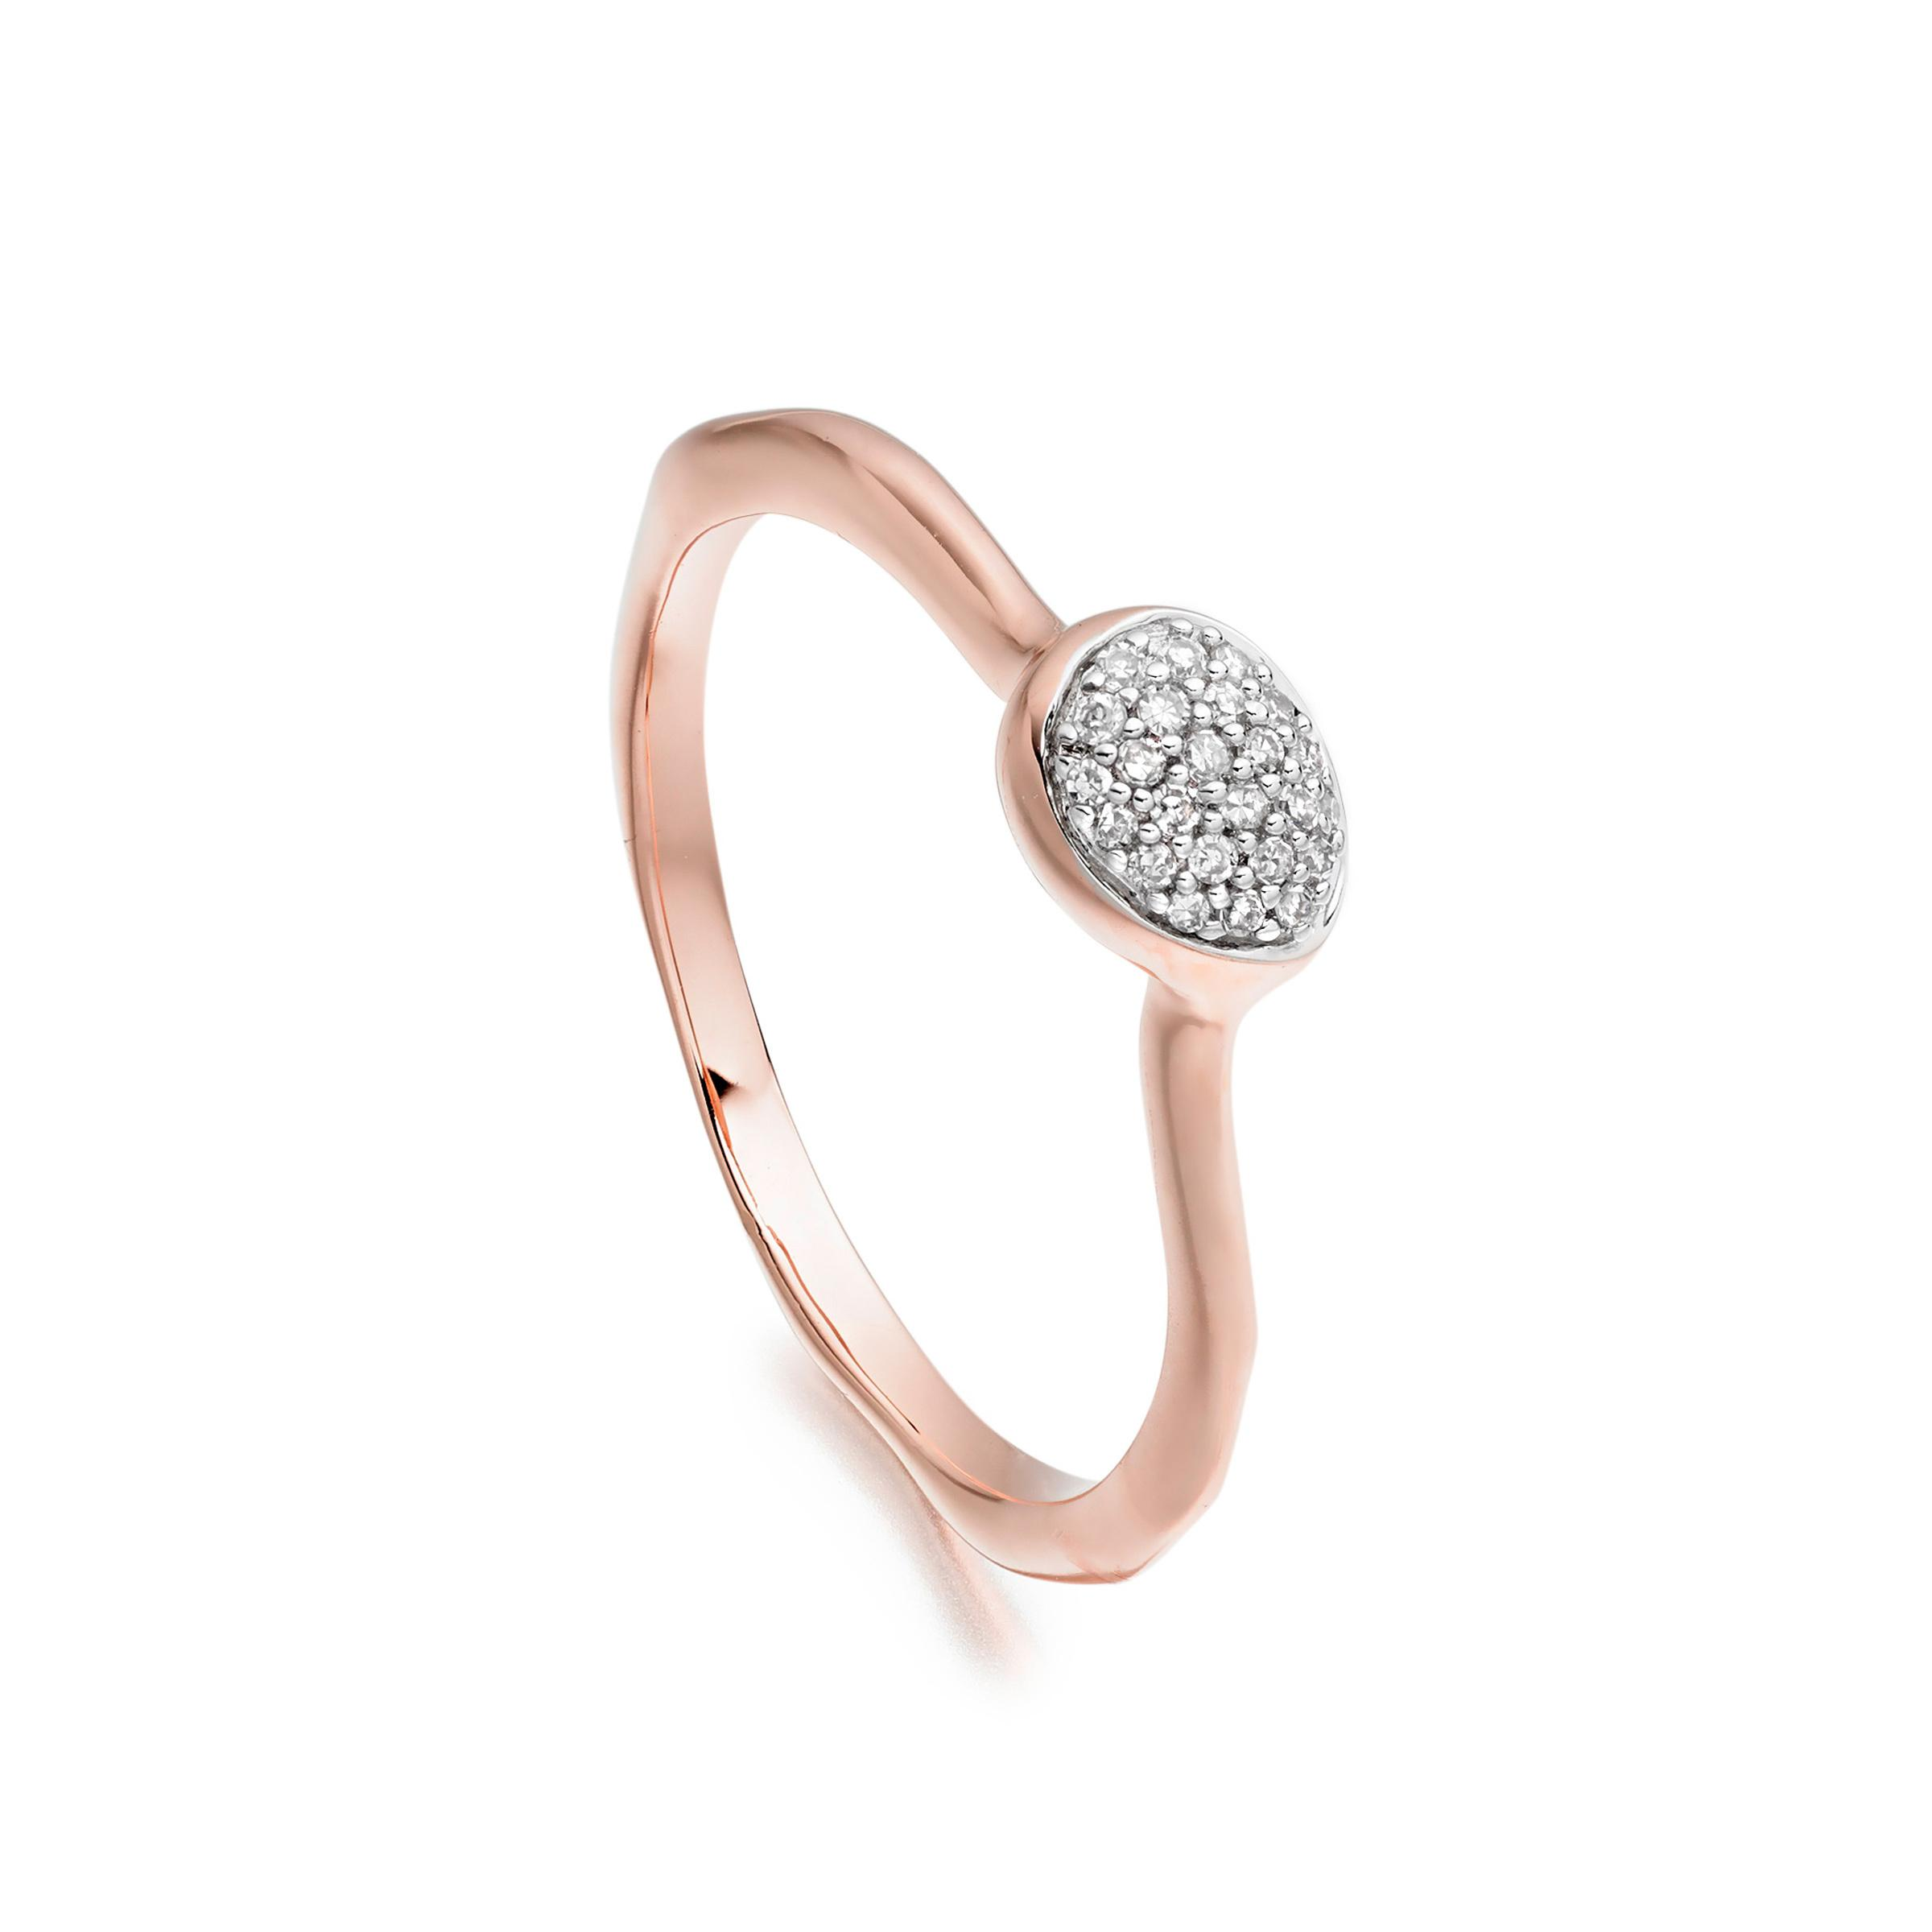 Siren Diamond Small Stacking Ring, Rose Gold Vermeil on Silver Monica Vinader